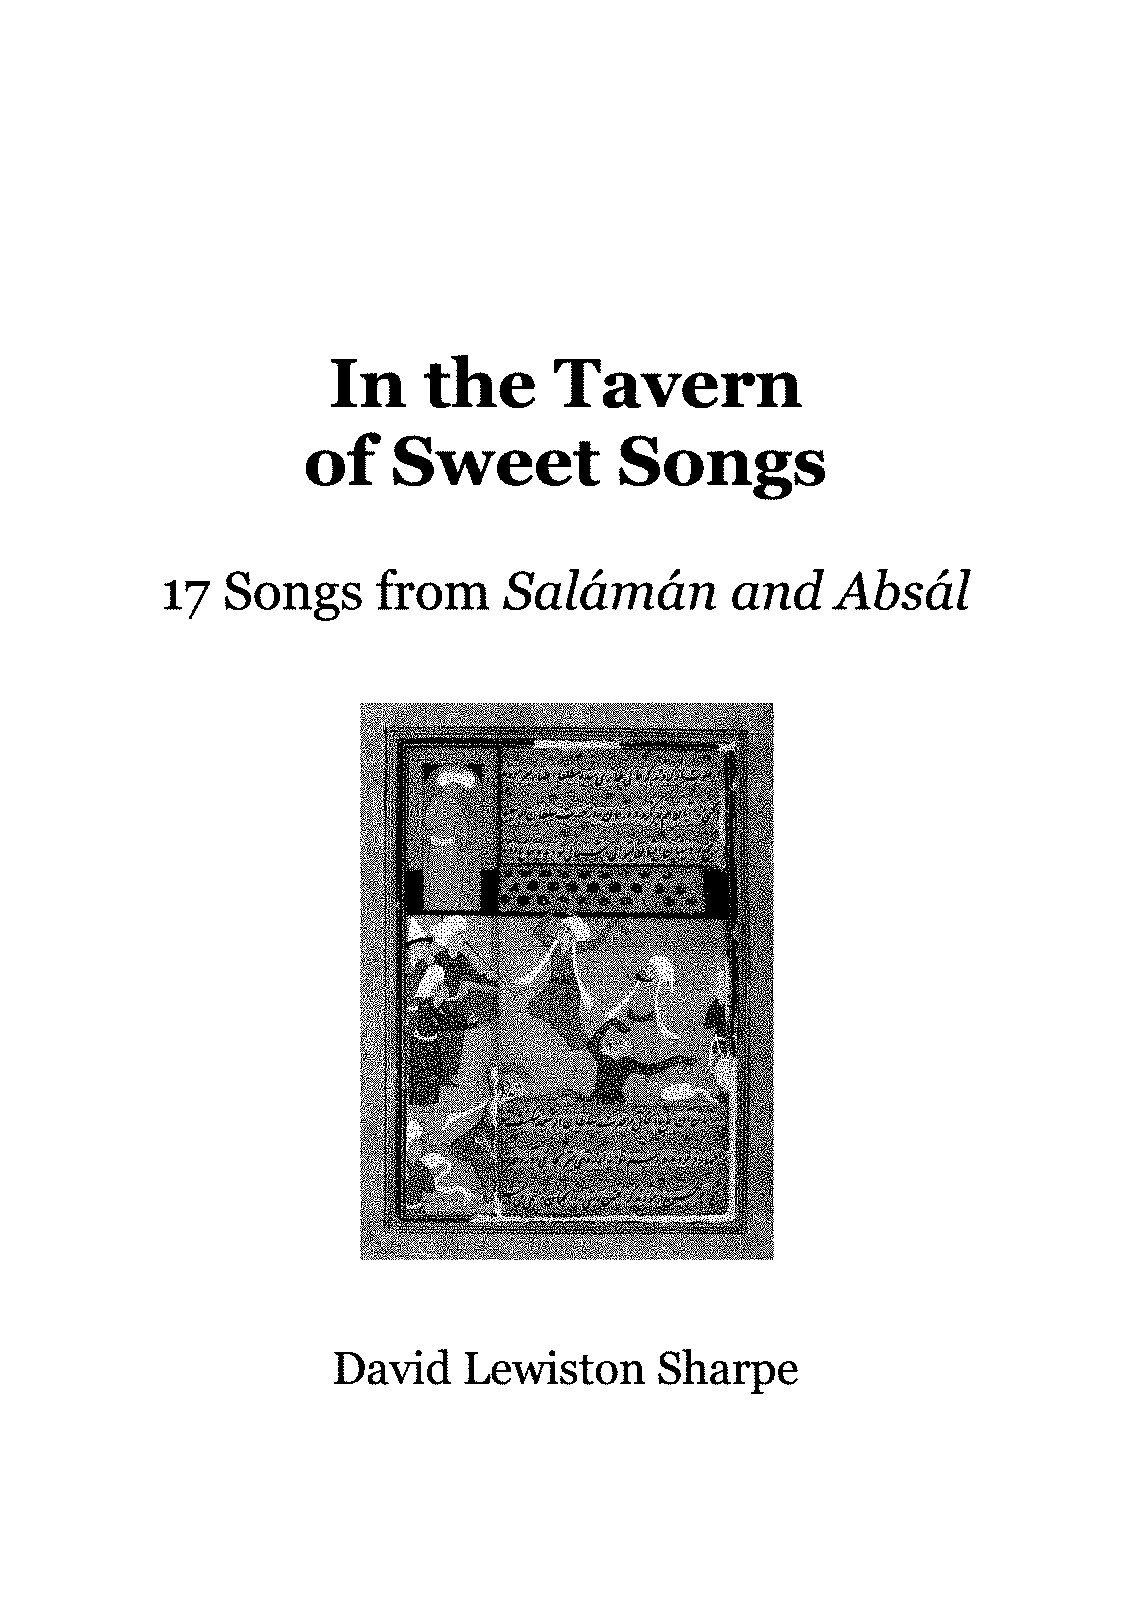 PMLP614718-Lewiston Sharpe - In the Tavern of Sweet Songs.pdf